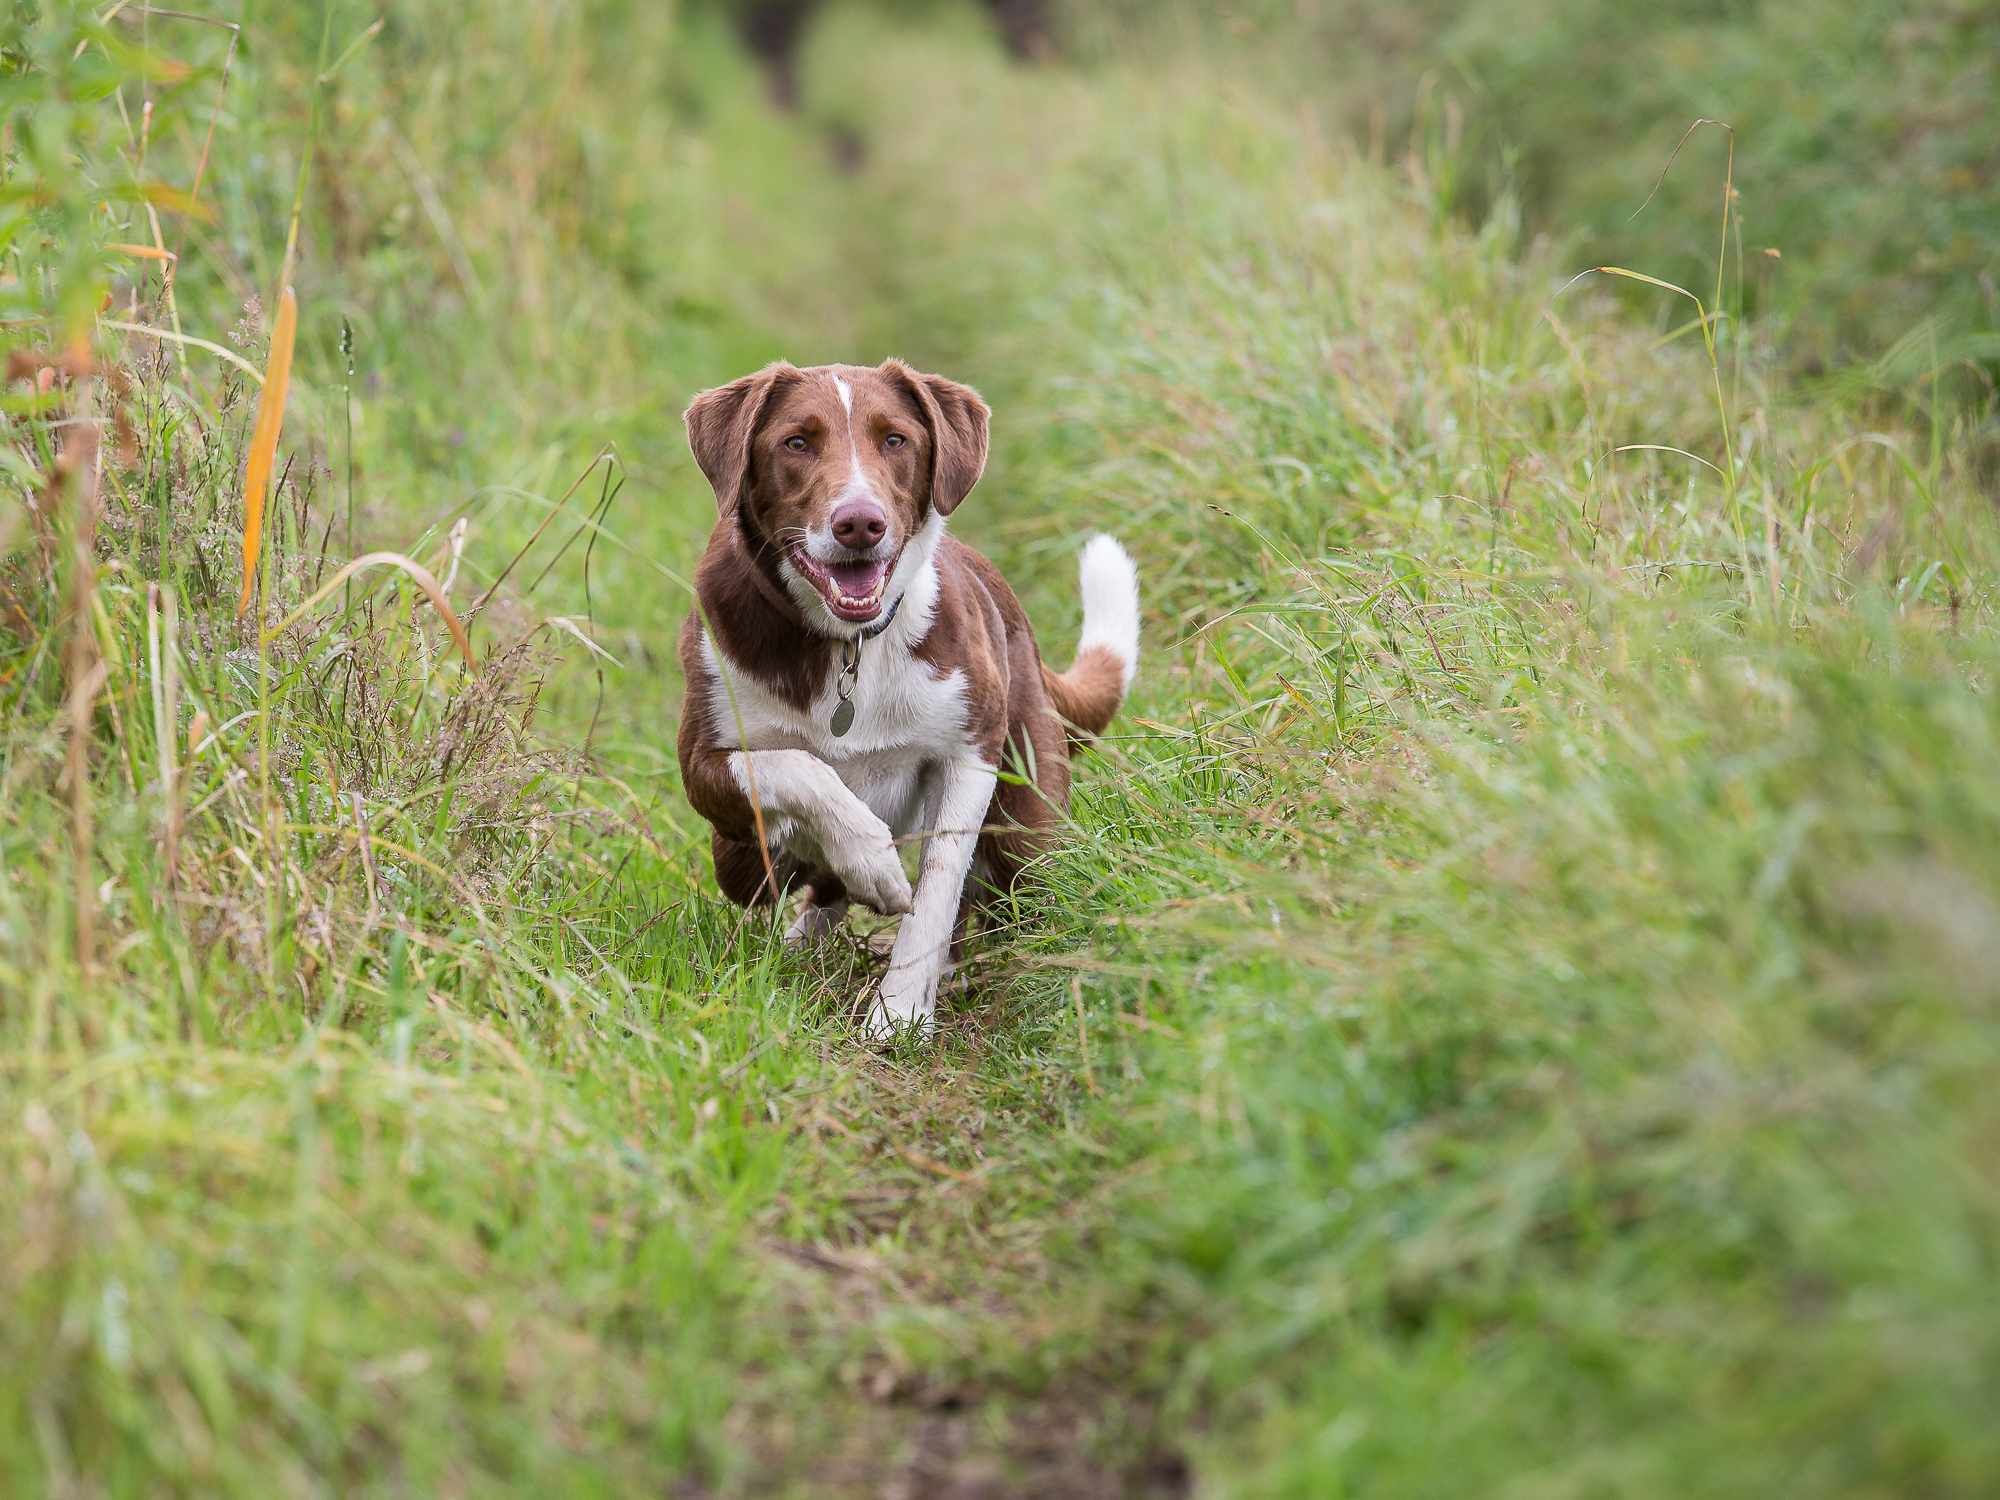 The Hound in the long grass, accelerates towards its target